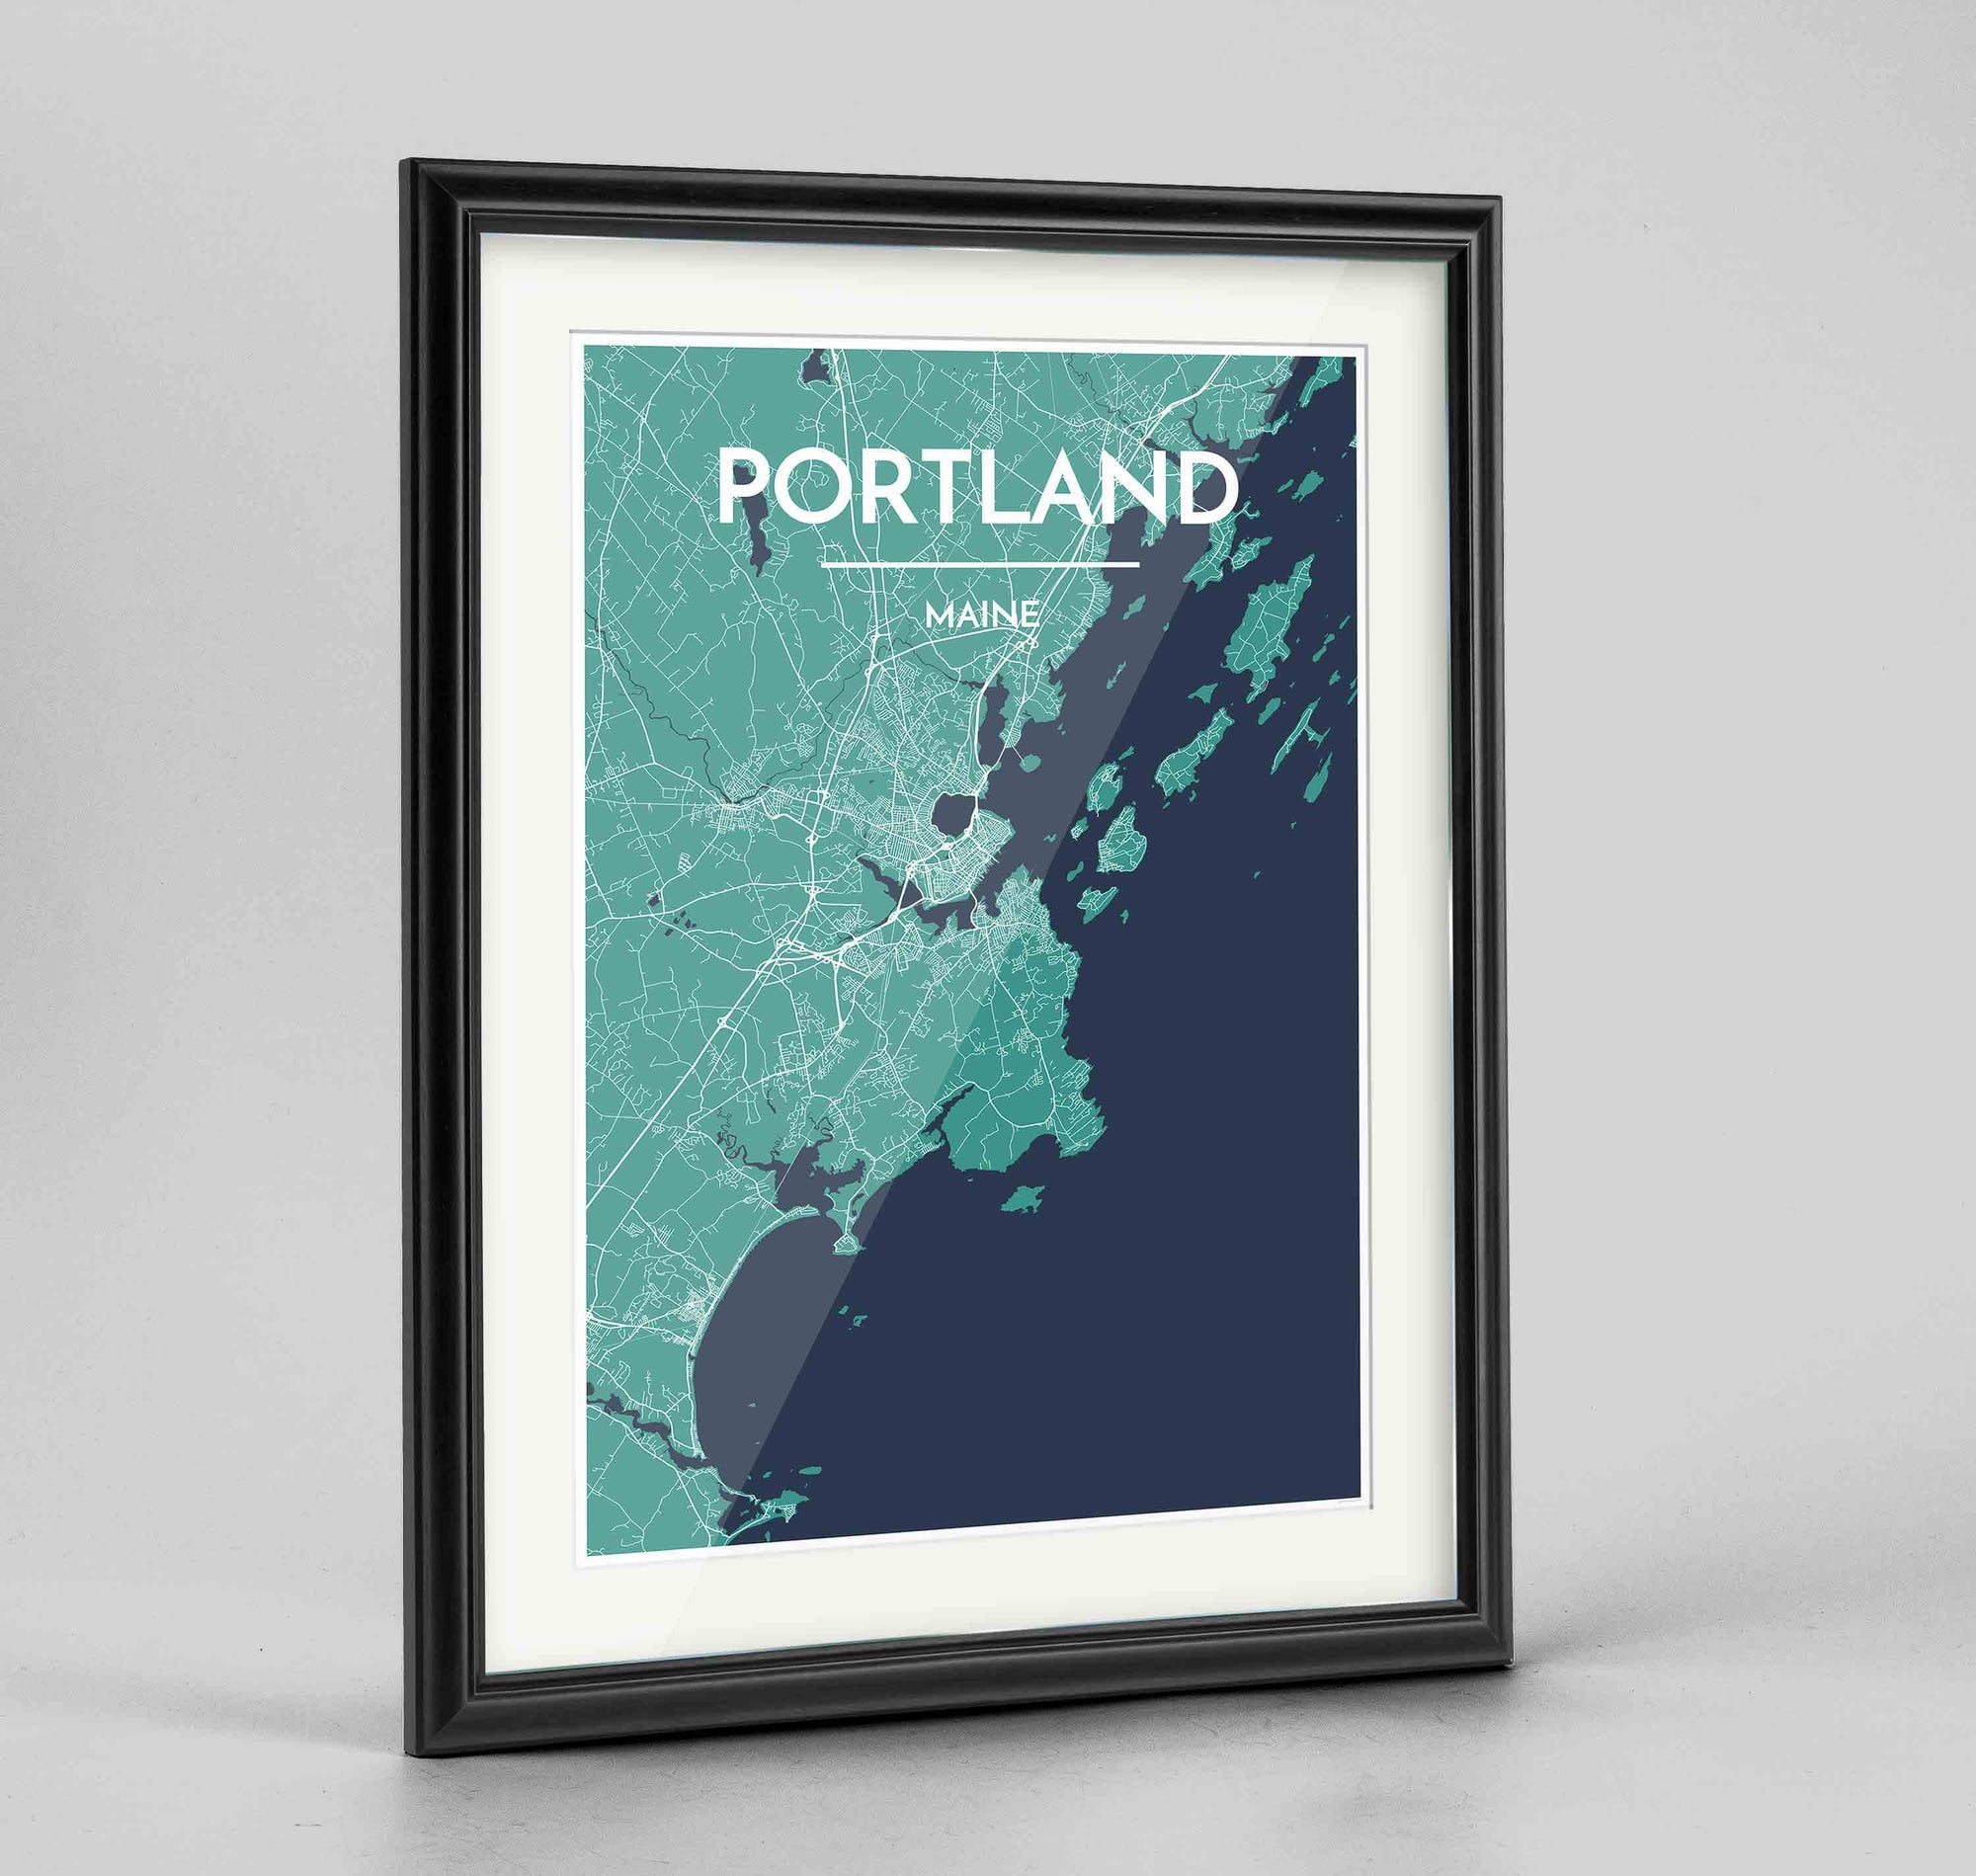 "Framed Portland - Maine Map Art Print 24x36"" Traditional Black frame Point Two Design Group"